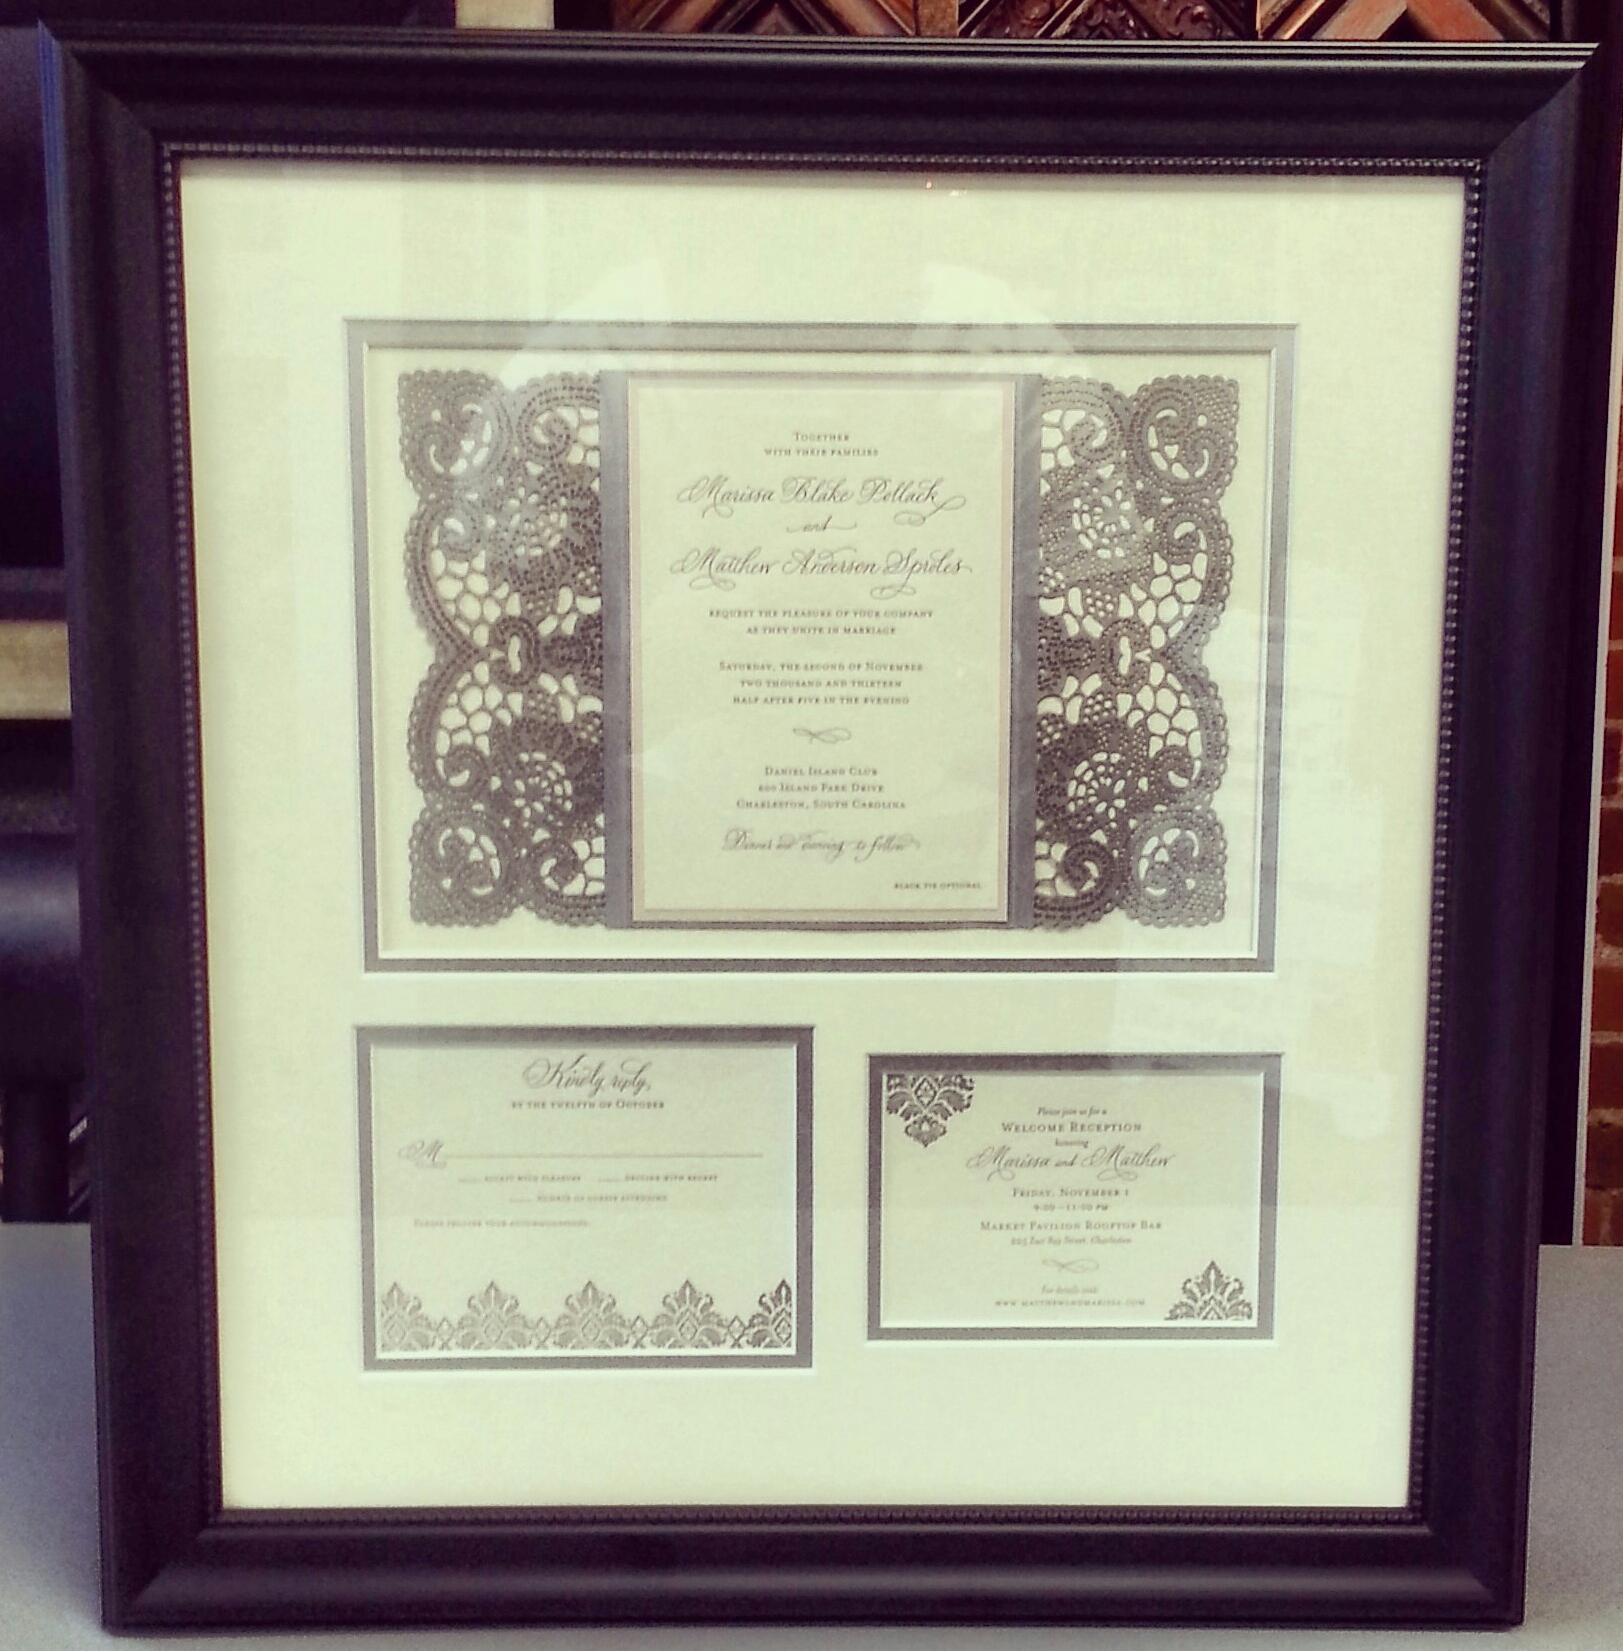 Wedding Invitation Gifts Ideas: Custom Framed Gifts Denver